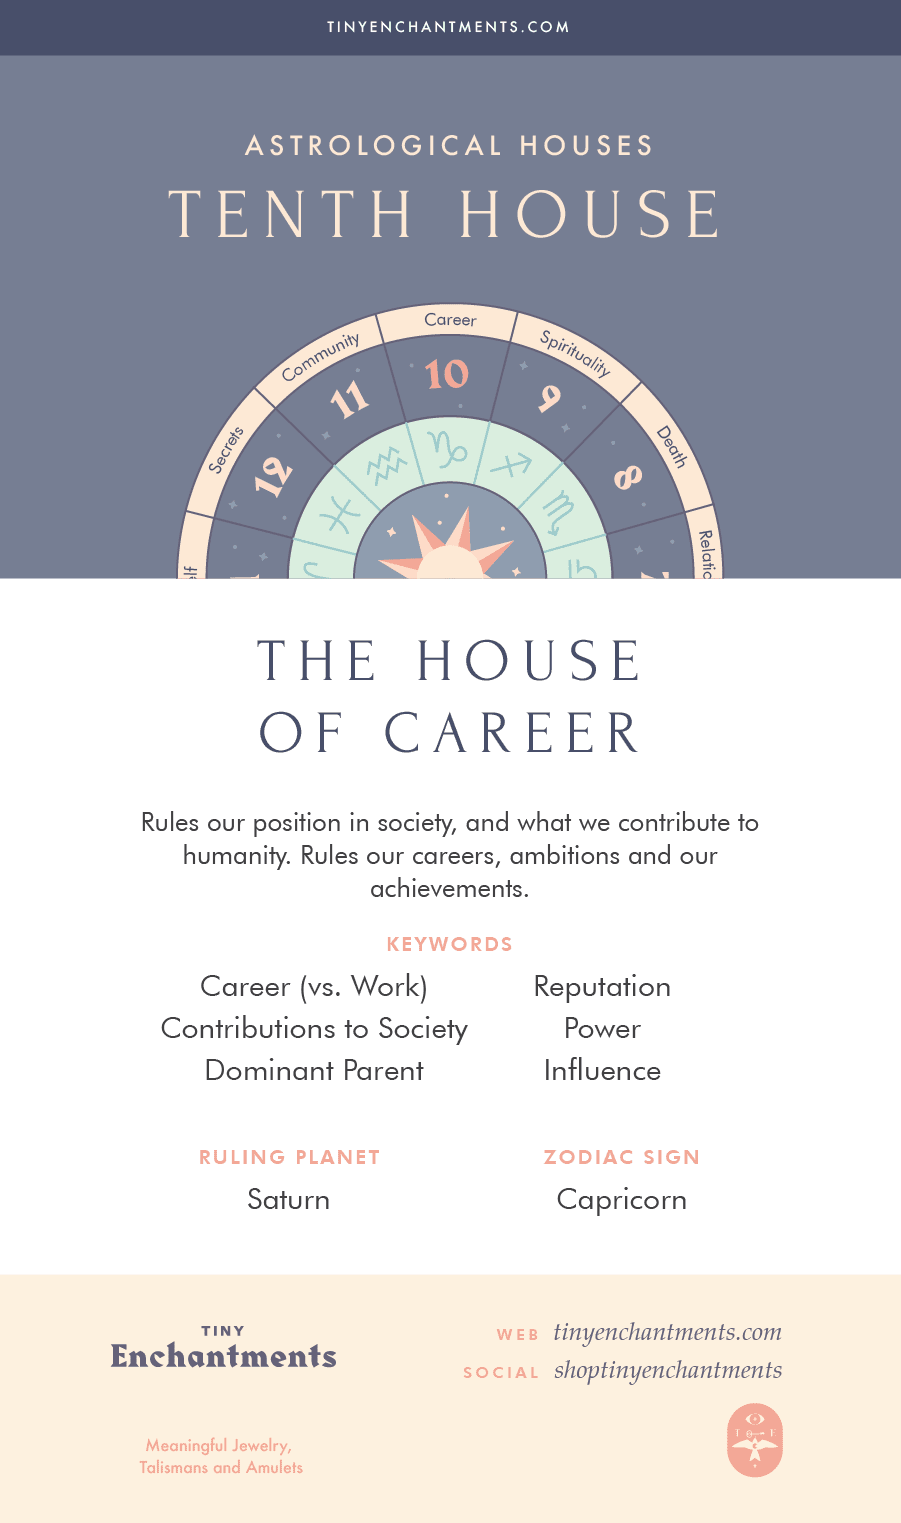 The Tenth House - The House of Career - 10th House in Astrology, Meaning, Ruling Planets, Ruling Zodiac Signs